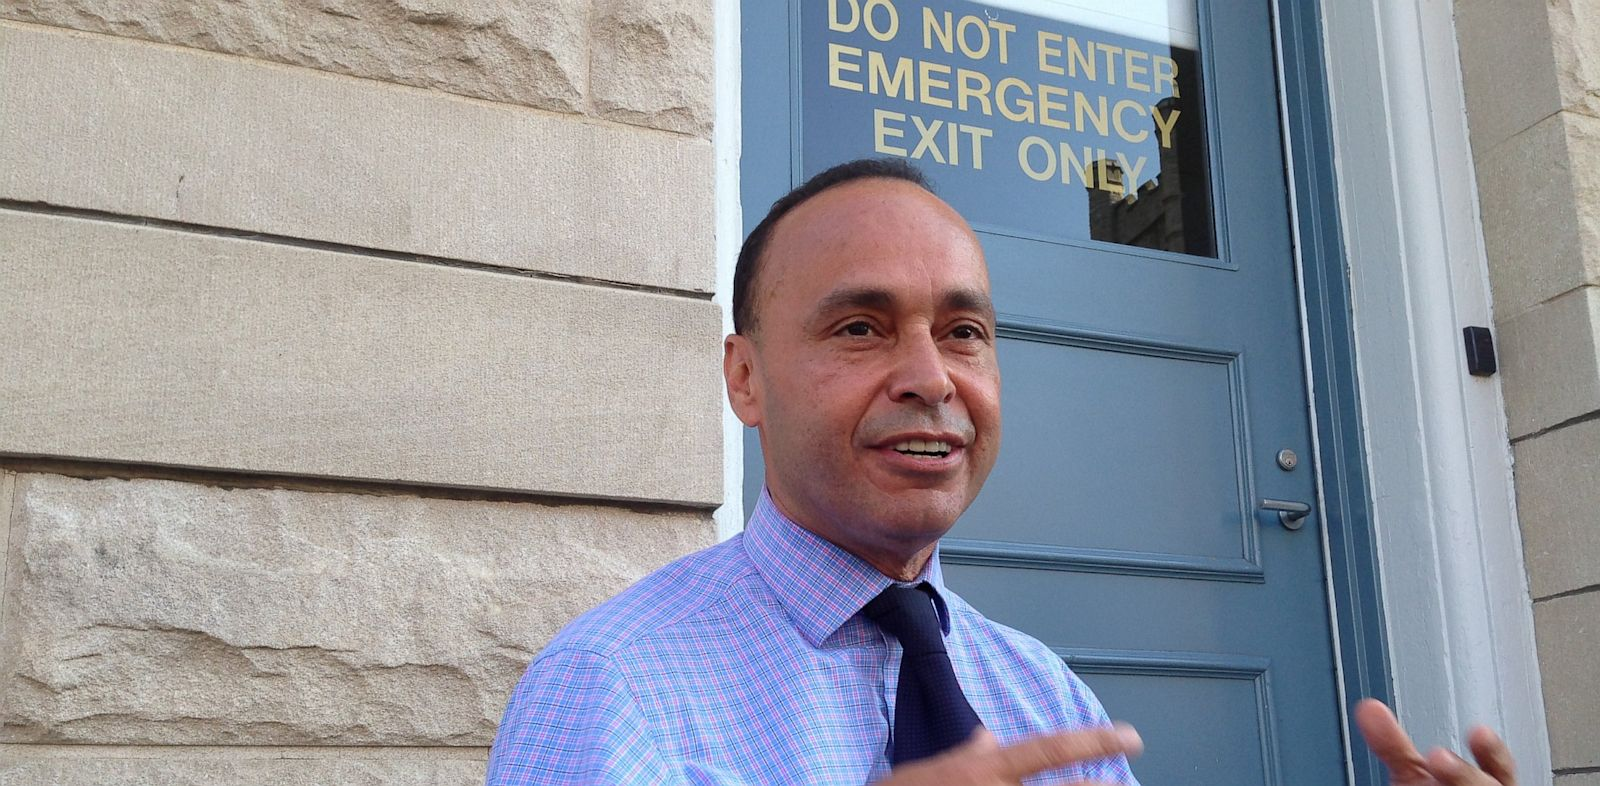 PHOTO: Rep. Luis Gutiérrez speaks to reporters before an immigration reform rally in Harrisonburg, Va. on August 26, 2013.